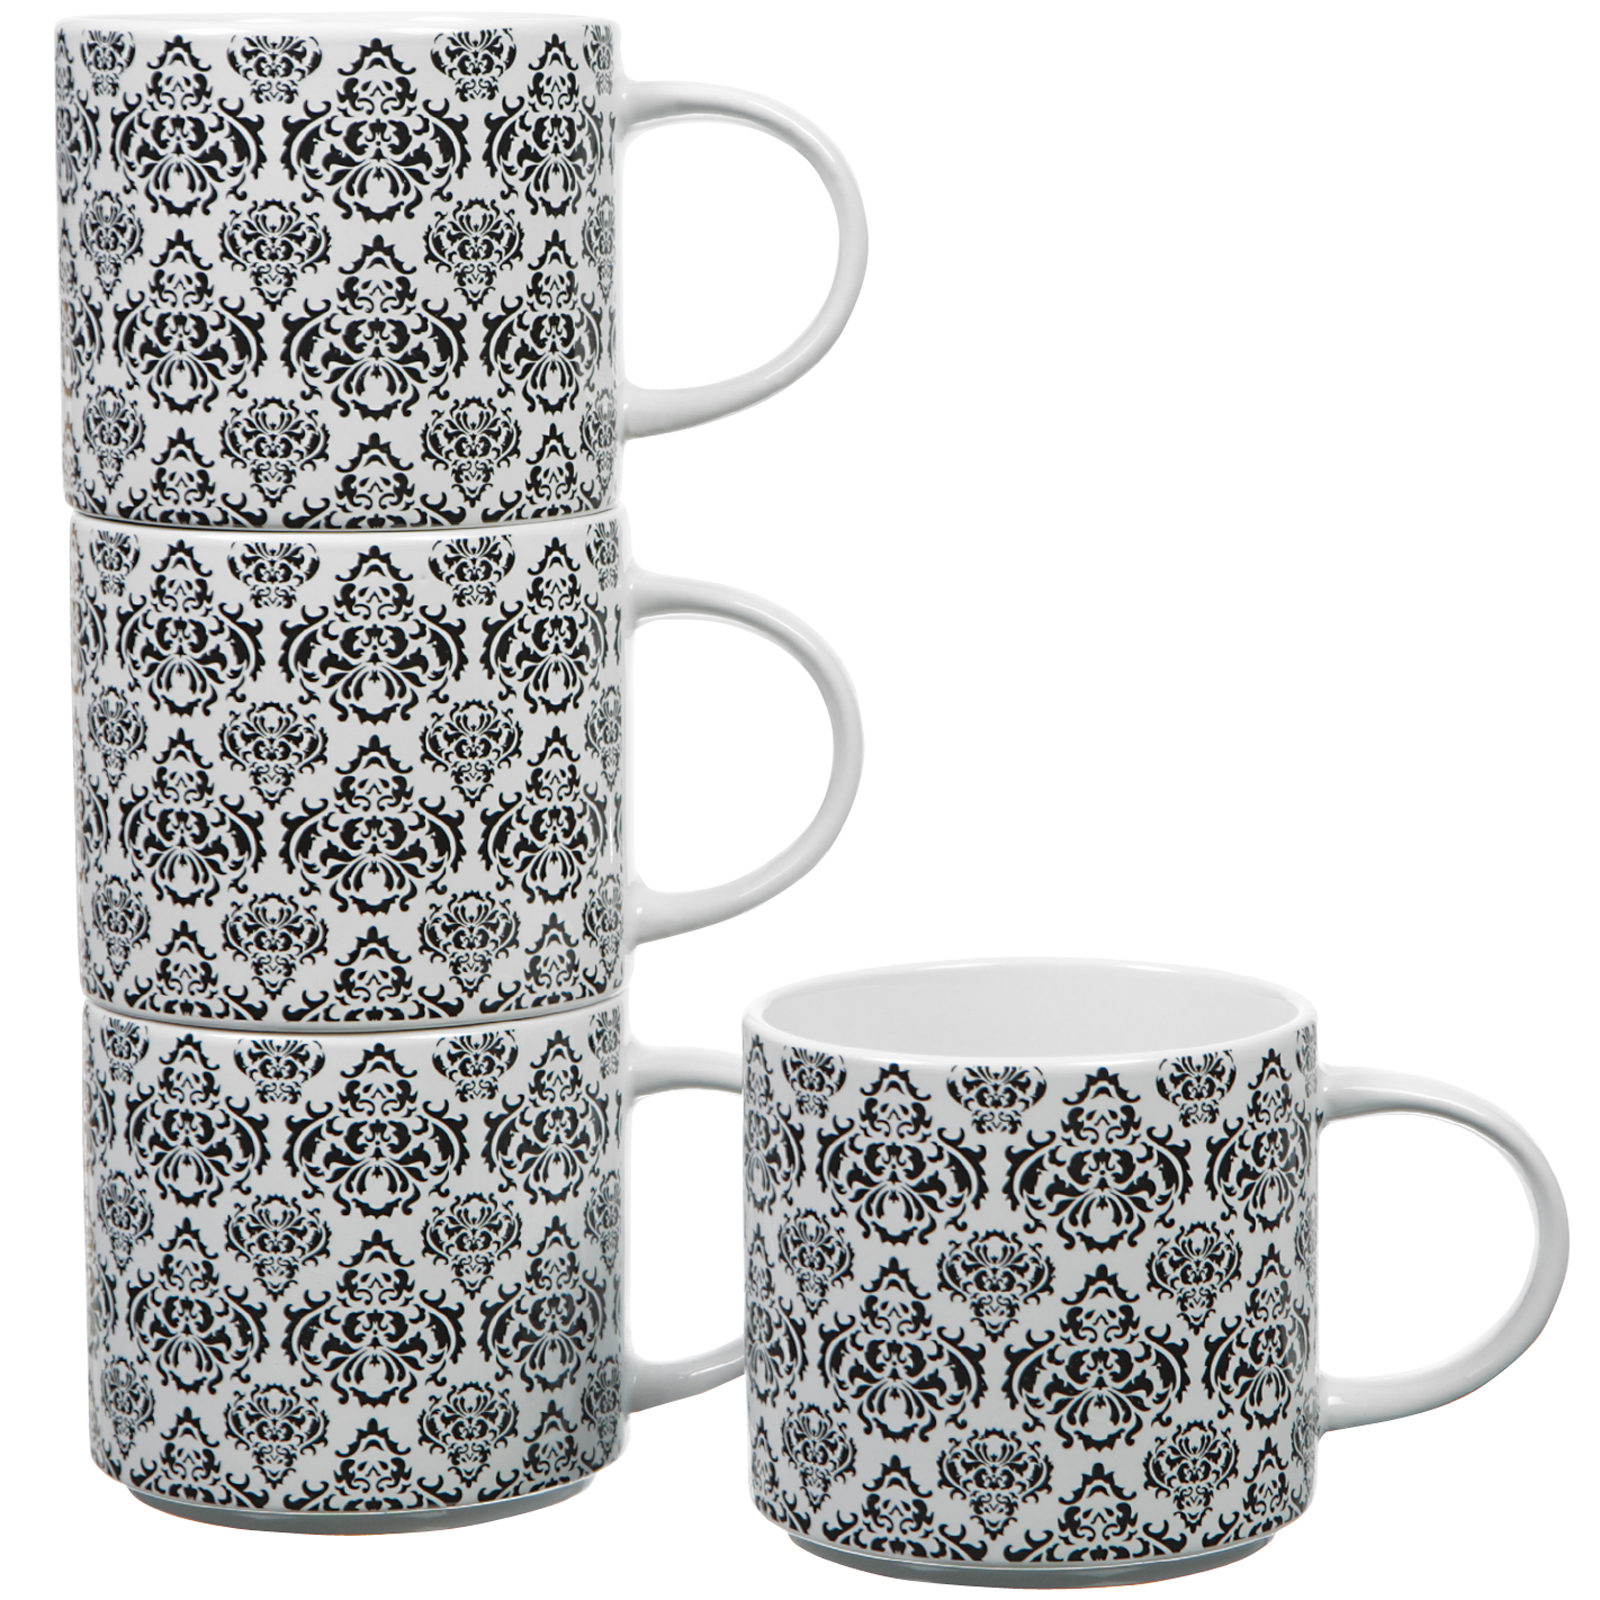 JC Penny mugs